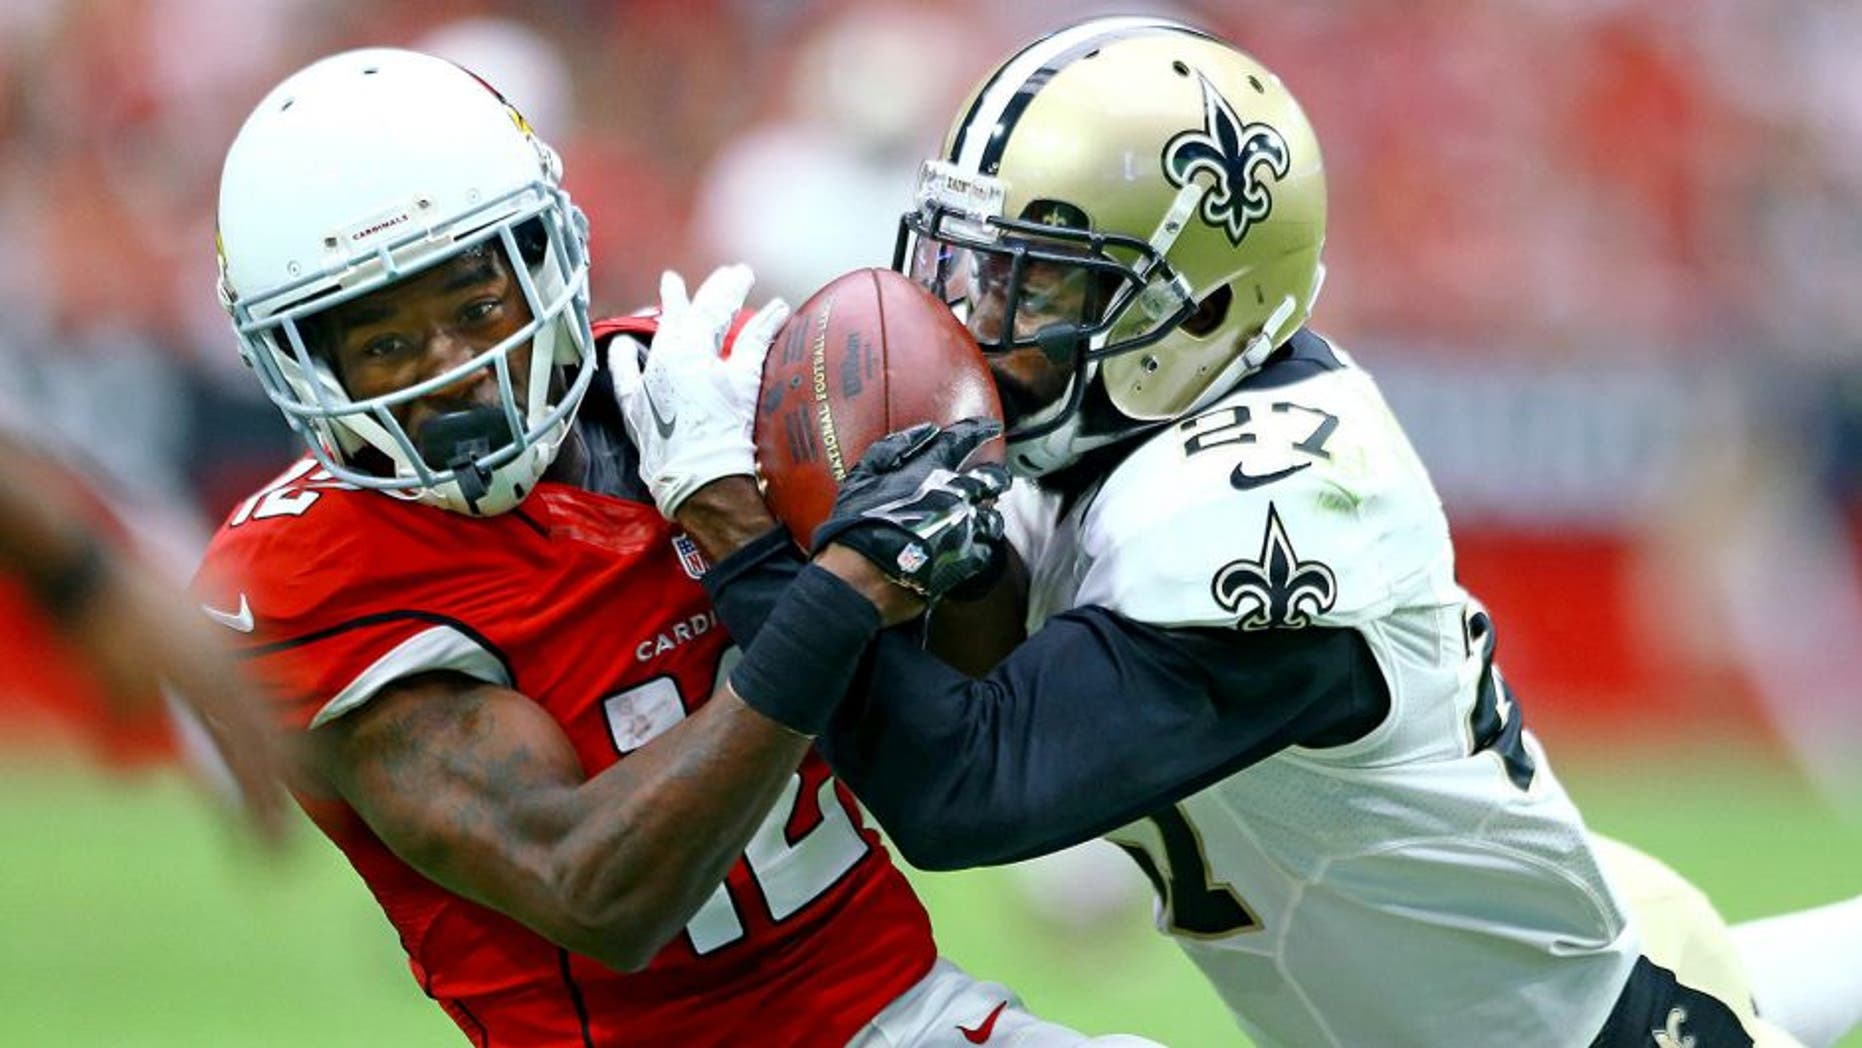 Sep 13, 2015; Glendale, AZ, USA; New Orleans Saints cornerback Damian Swann (right) breaks up a pass intended for Arizona Cardinals wide receiver John Brown in the second quarter at University of Phoenix Stadium. Mandatory Credit: Mark J. Rebilas-USA TODAY Sports